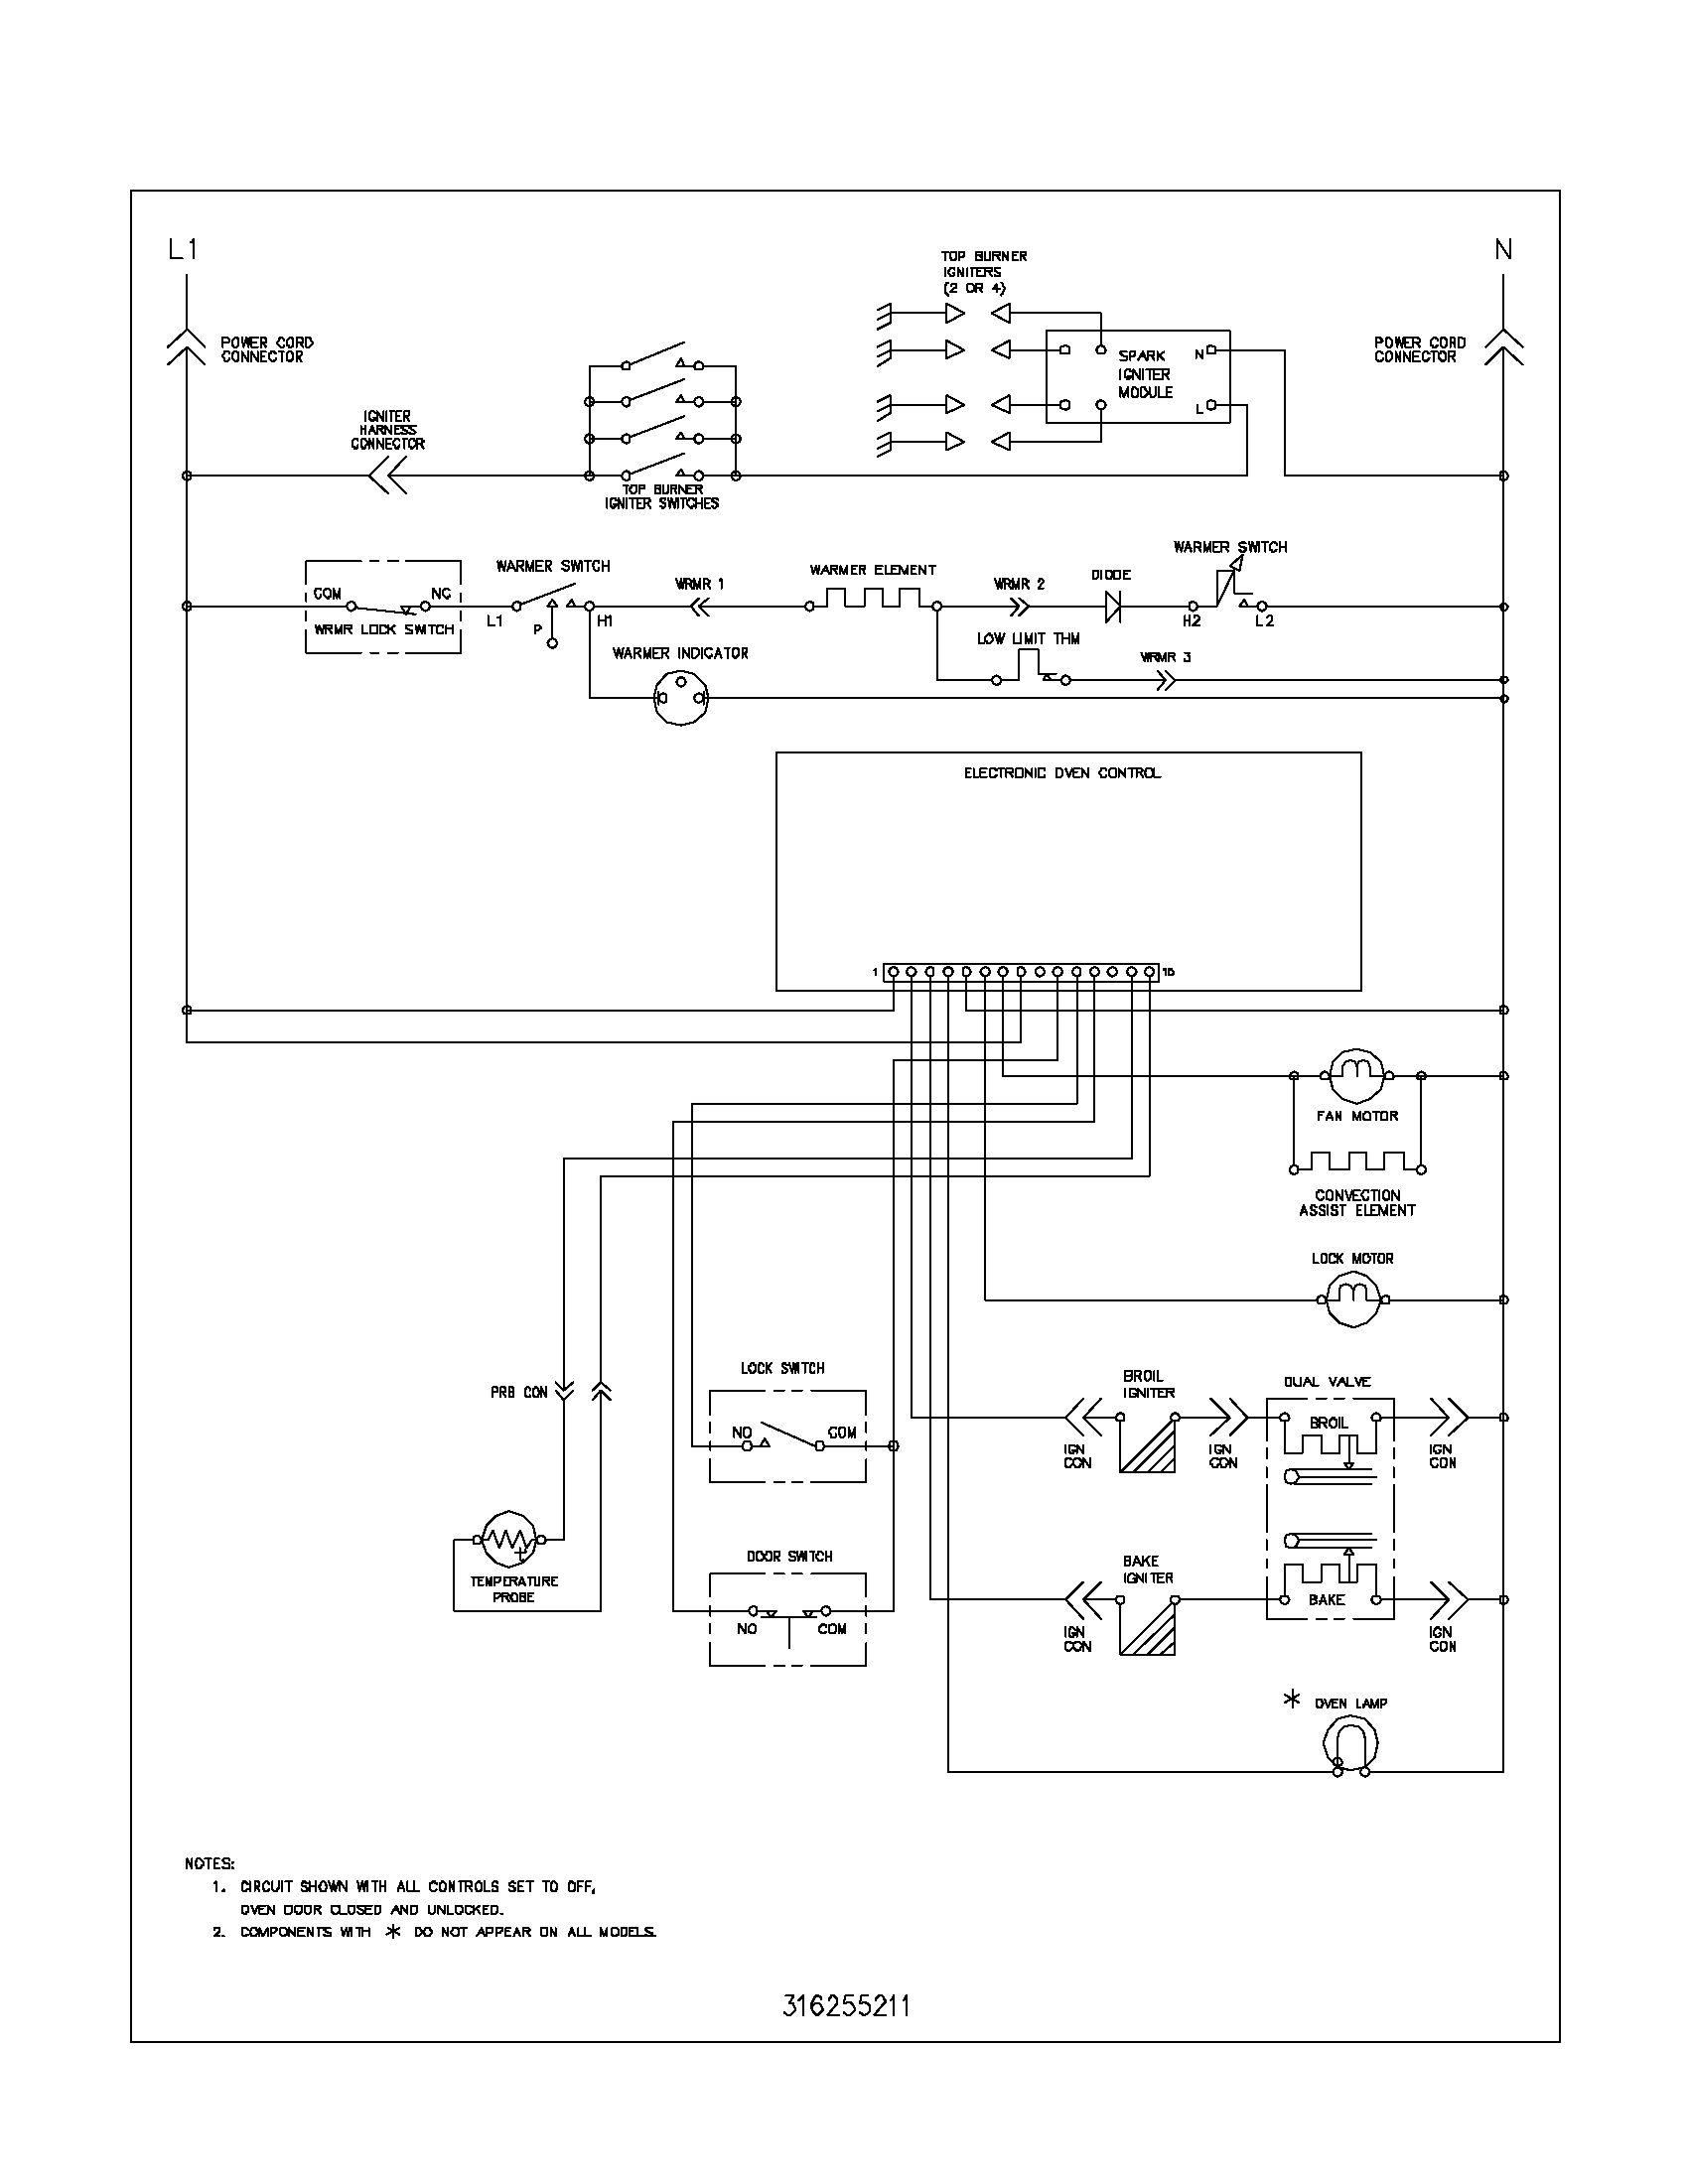 Range Schematic Wiring - Automotive Wiring Diagram • on frigidaire oven wiring diagram model ples399ecf, frigidaire dryer parts timer knob, frigidaire electric oven parts, frigidaire oven parts diagram, dishwasher diagram, ge gas range parts diagram, frigidaire dryer parts diagram, frigidaire electric oven sensor, frigidaire gallery dryer diagram, timer control circuit diagram, kitchenaid superba ice maker diagram, frigidaire electric dryer diagram, frigidaire oven model numbers,